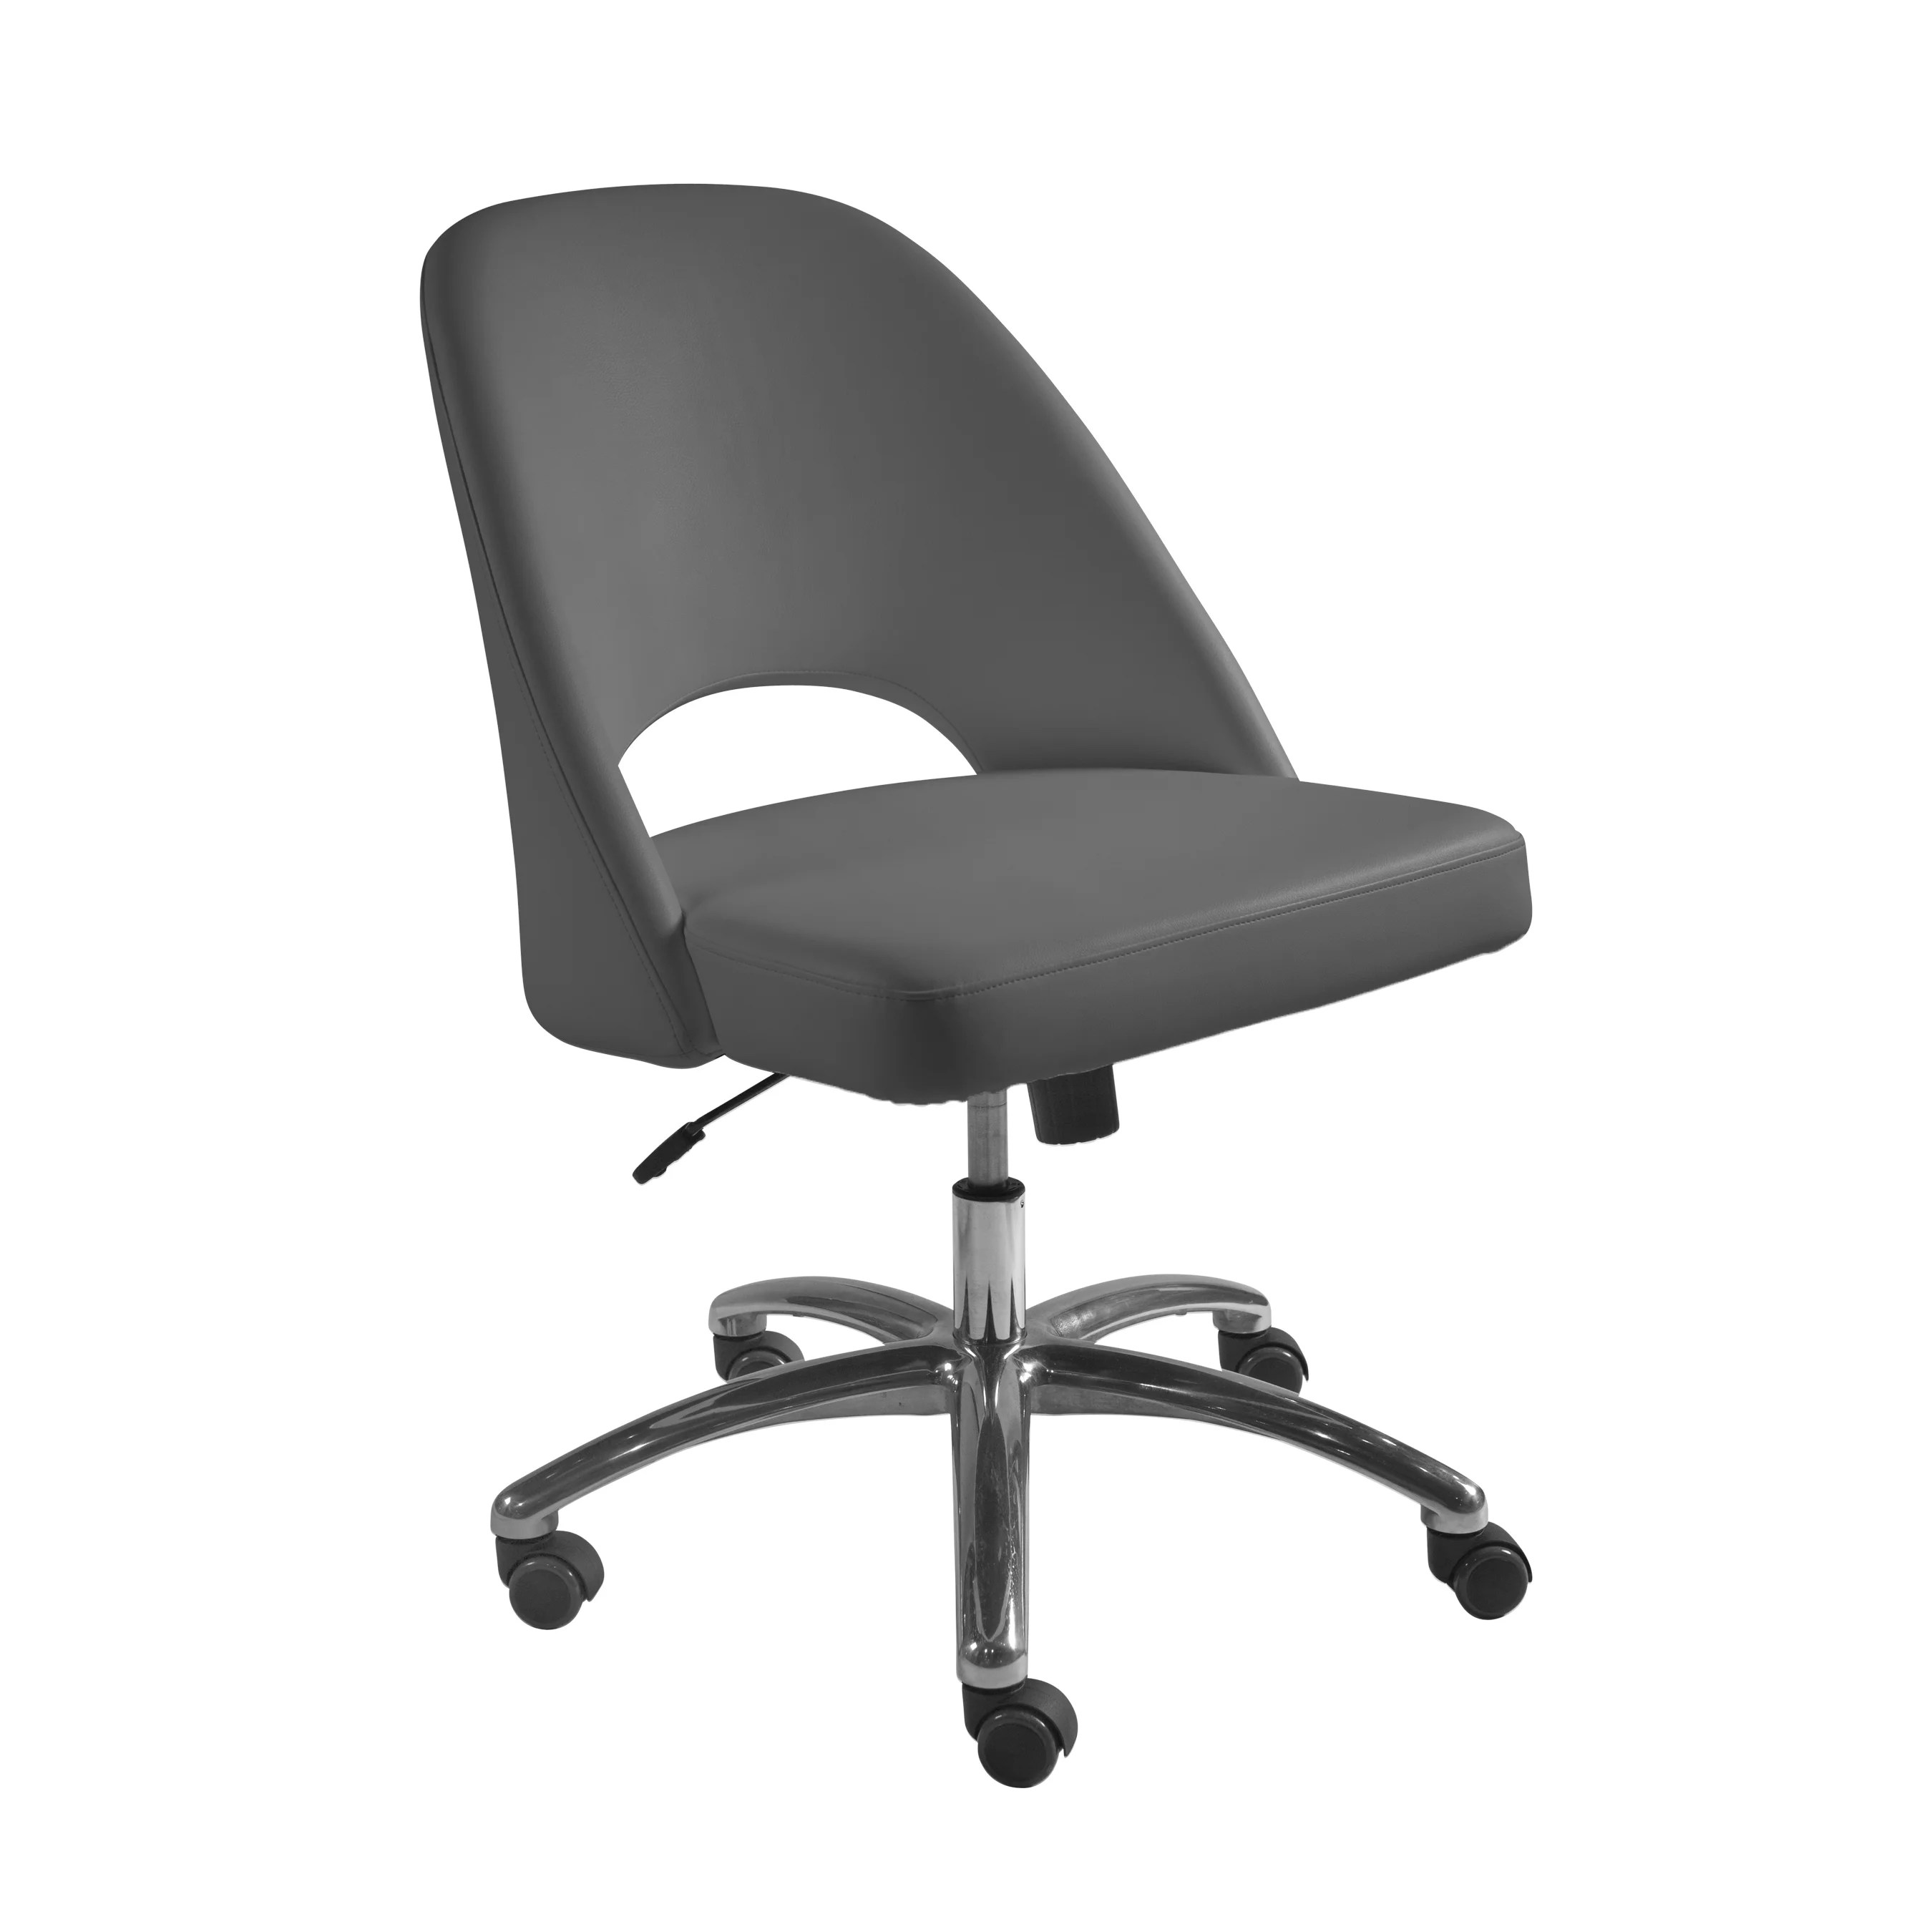 Low Back Office Chair Teague Low Back Office Chair In Gray With Polished Aluminum Base